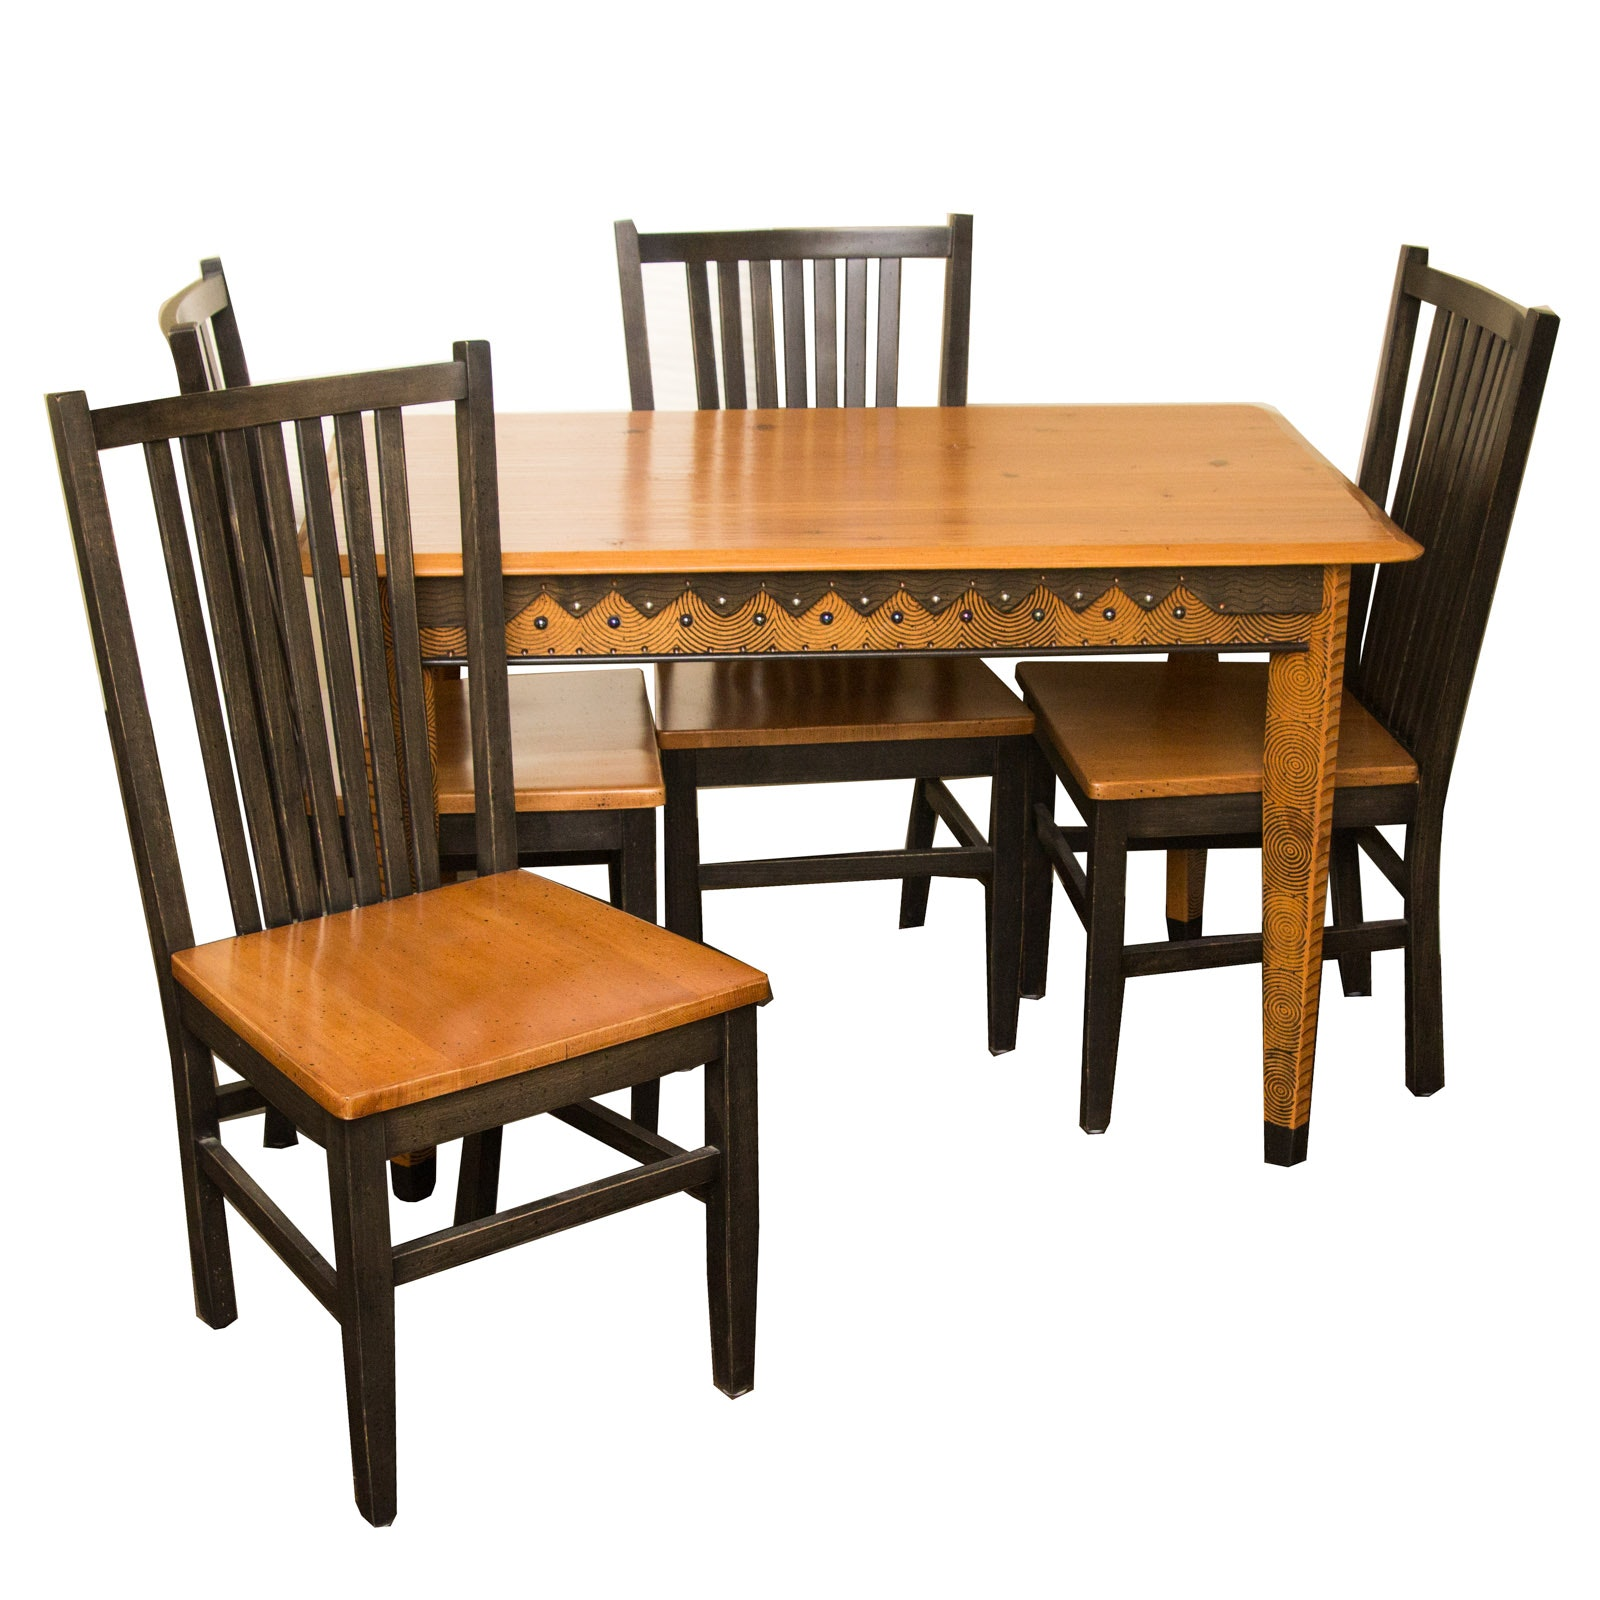 Decorative Dining Table and Chairs